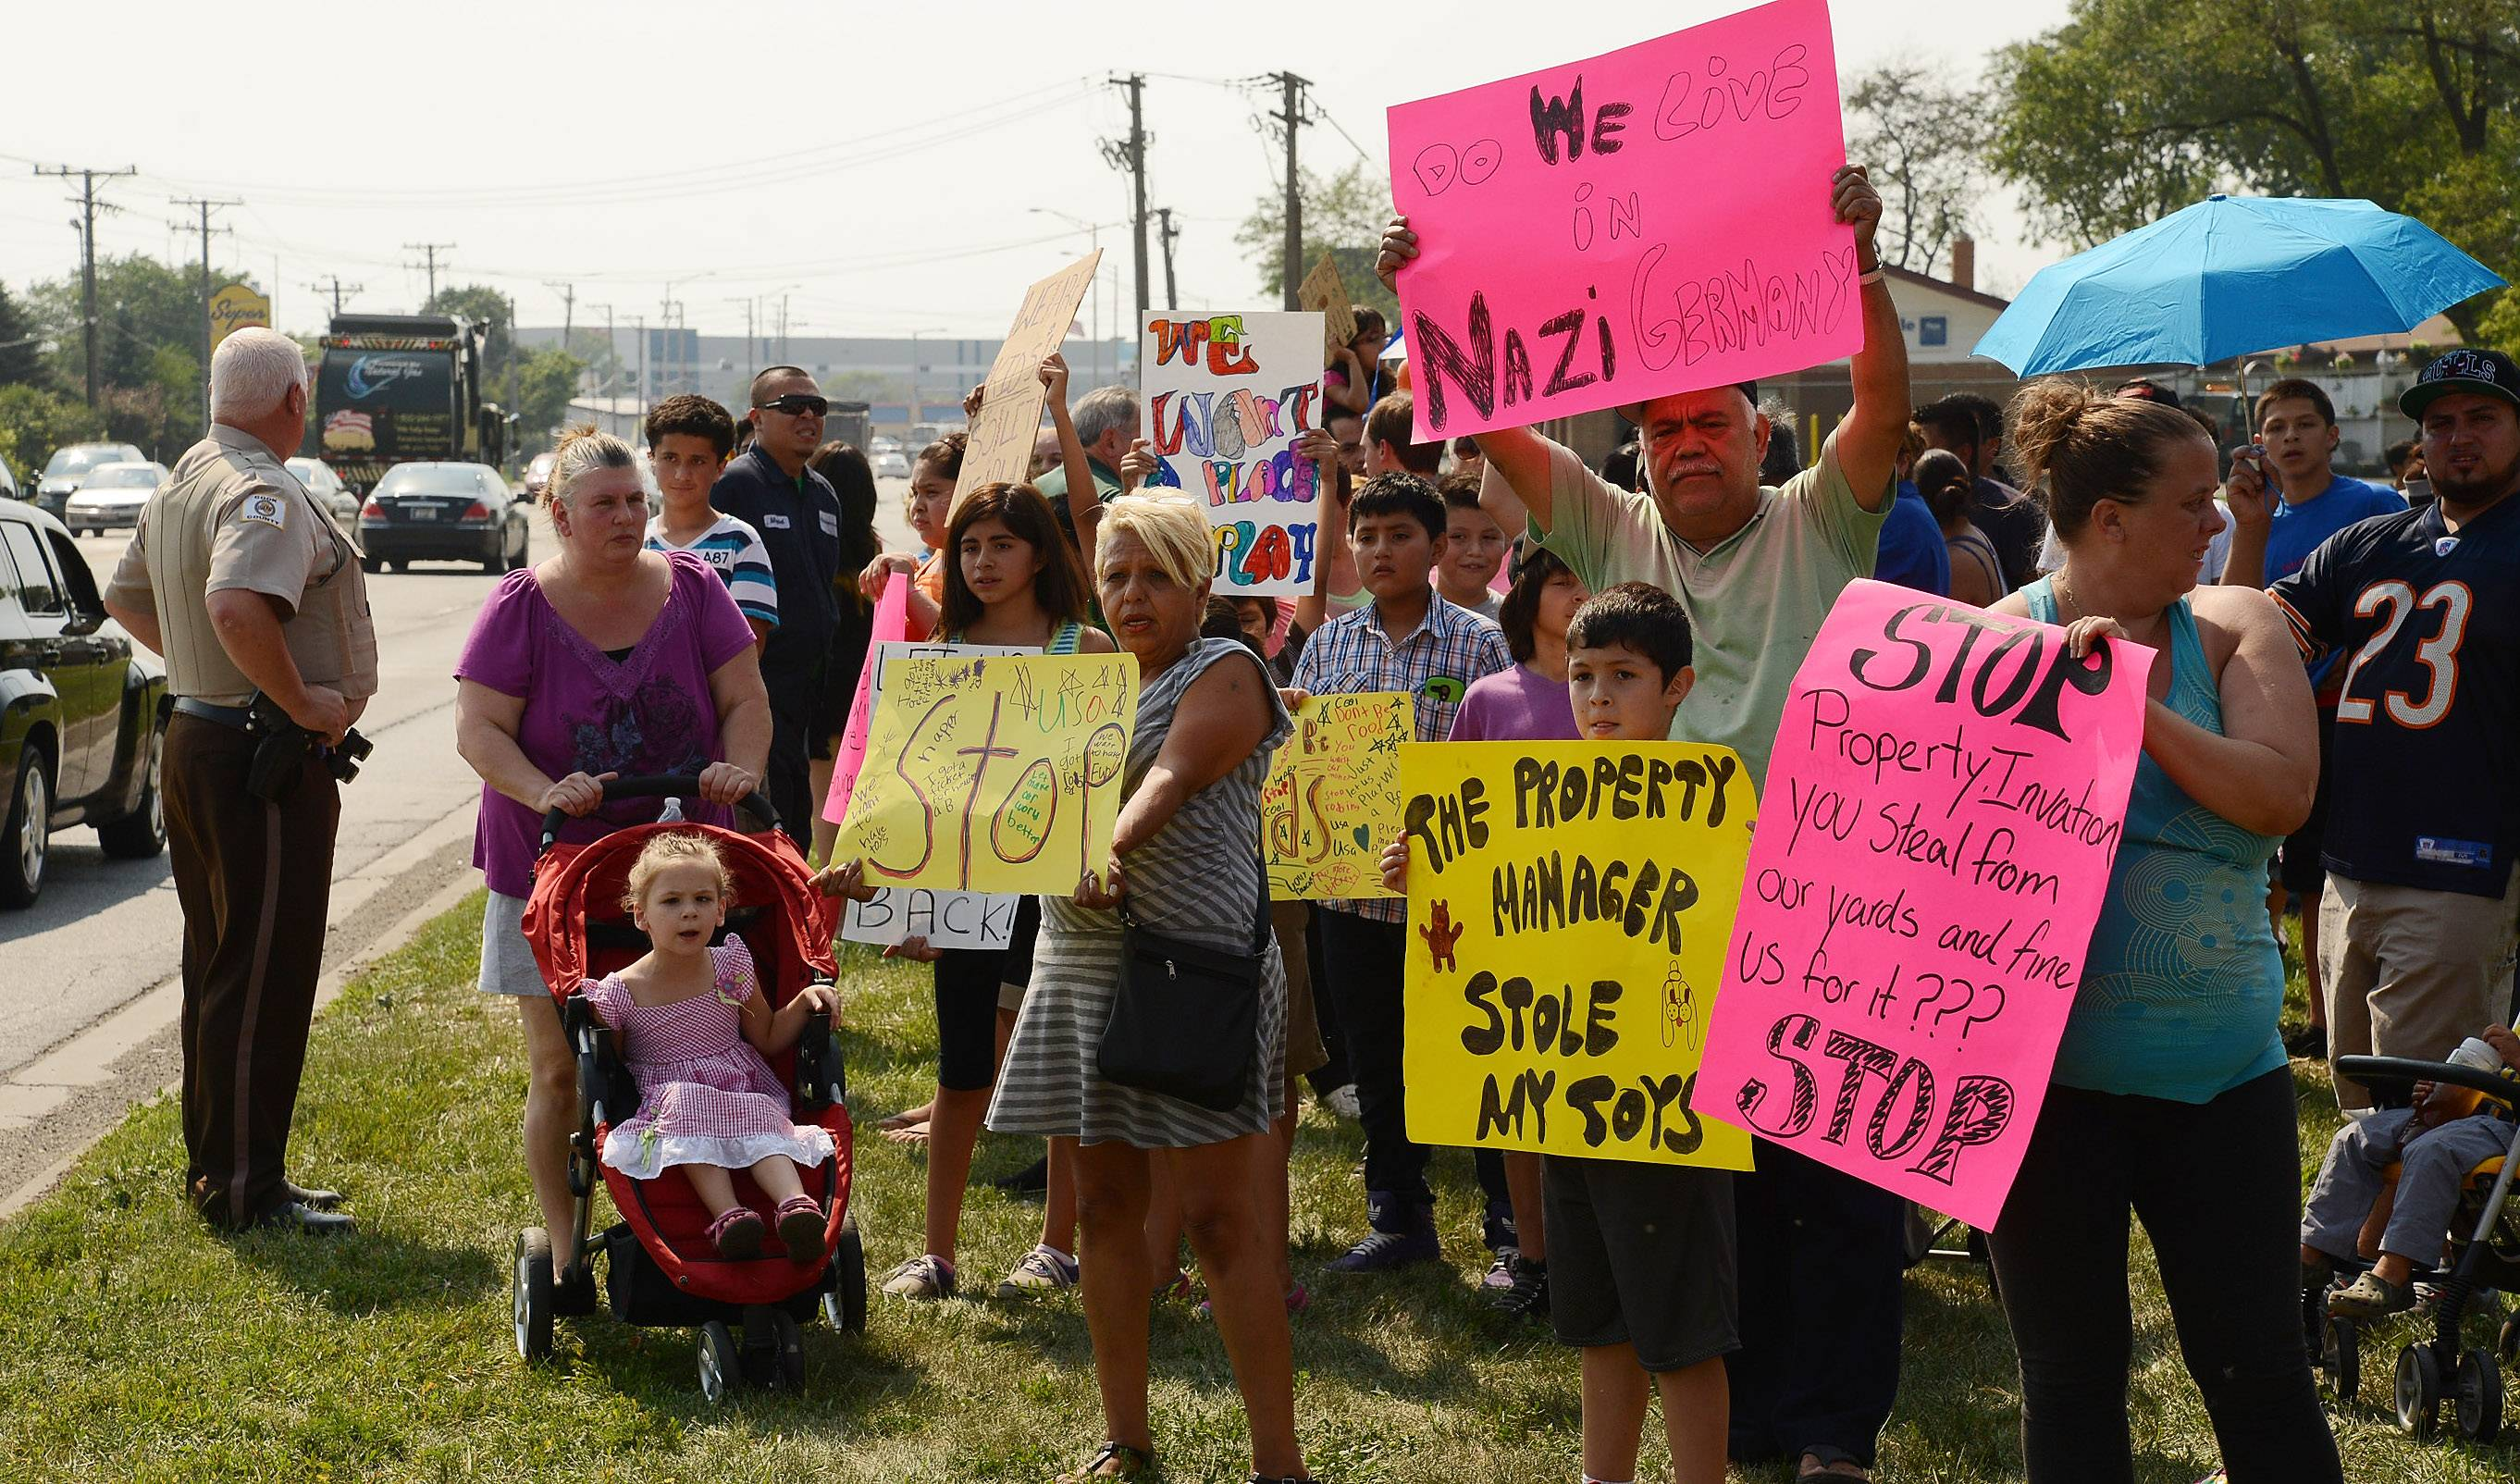 Mobile home park residents protest after manager removes belongings from yards